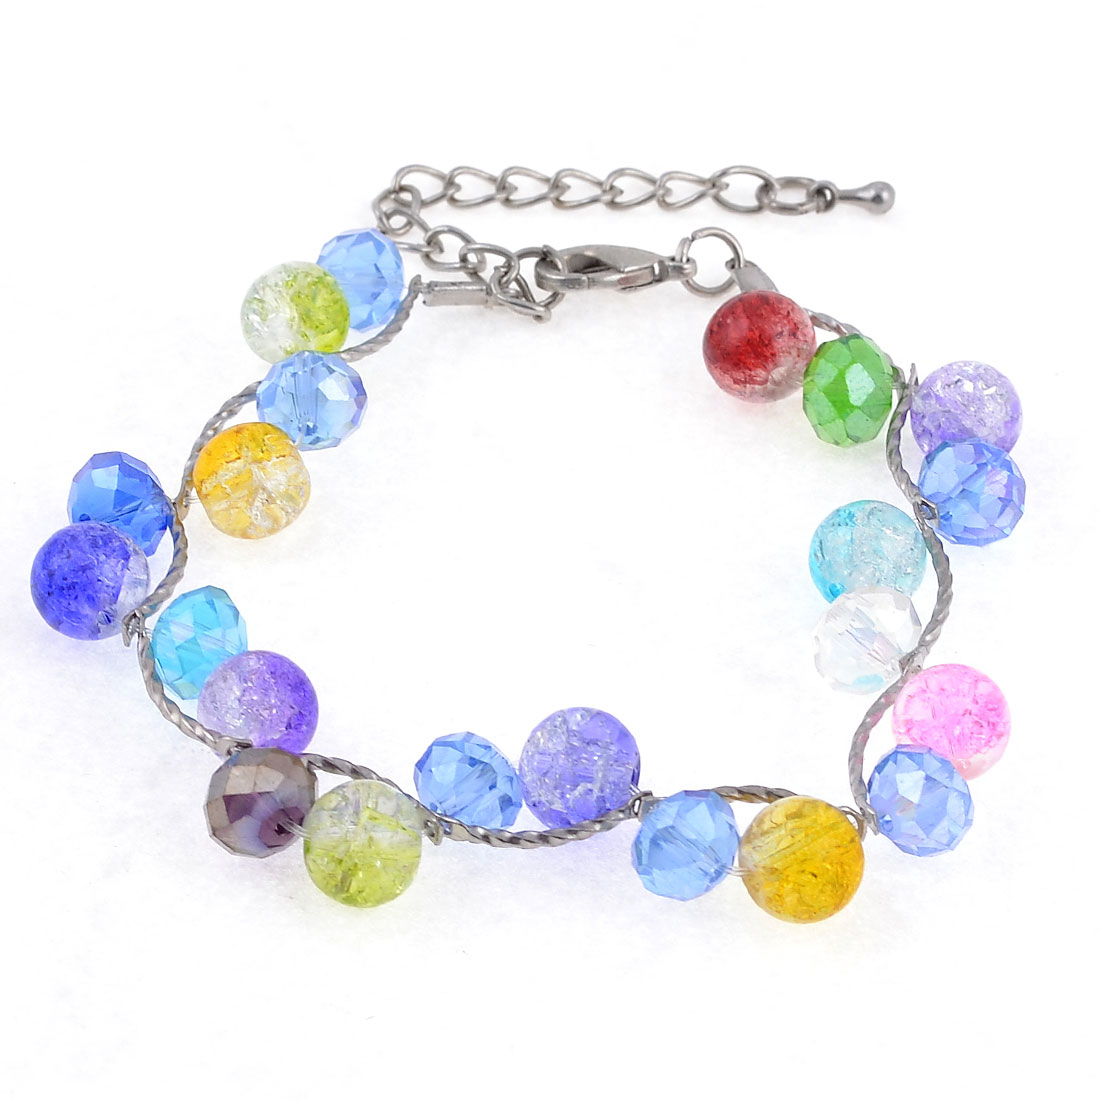 Adjustable Plastic Single Strand Colorful Beads Decor Chain Bracelet